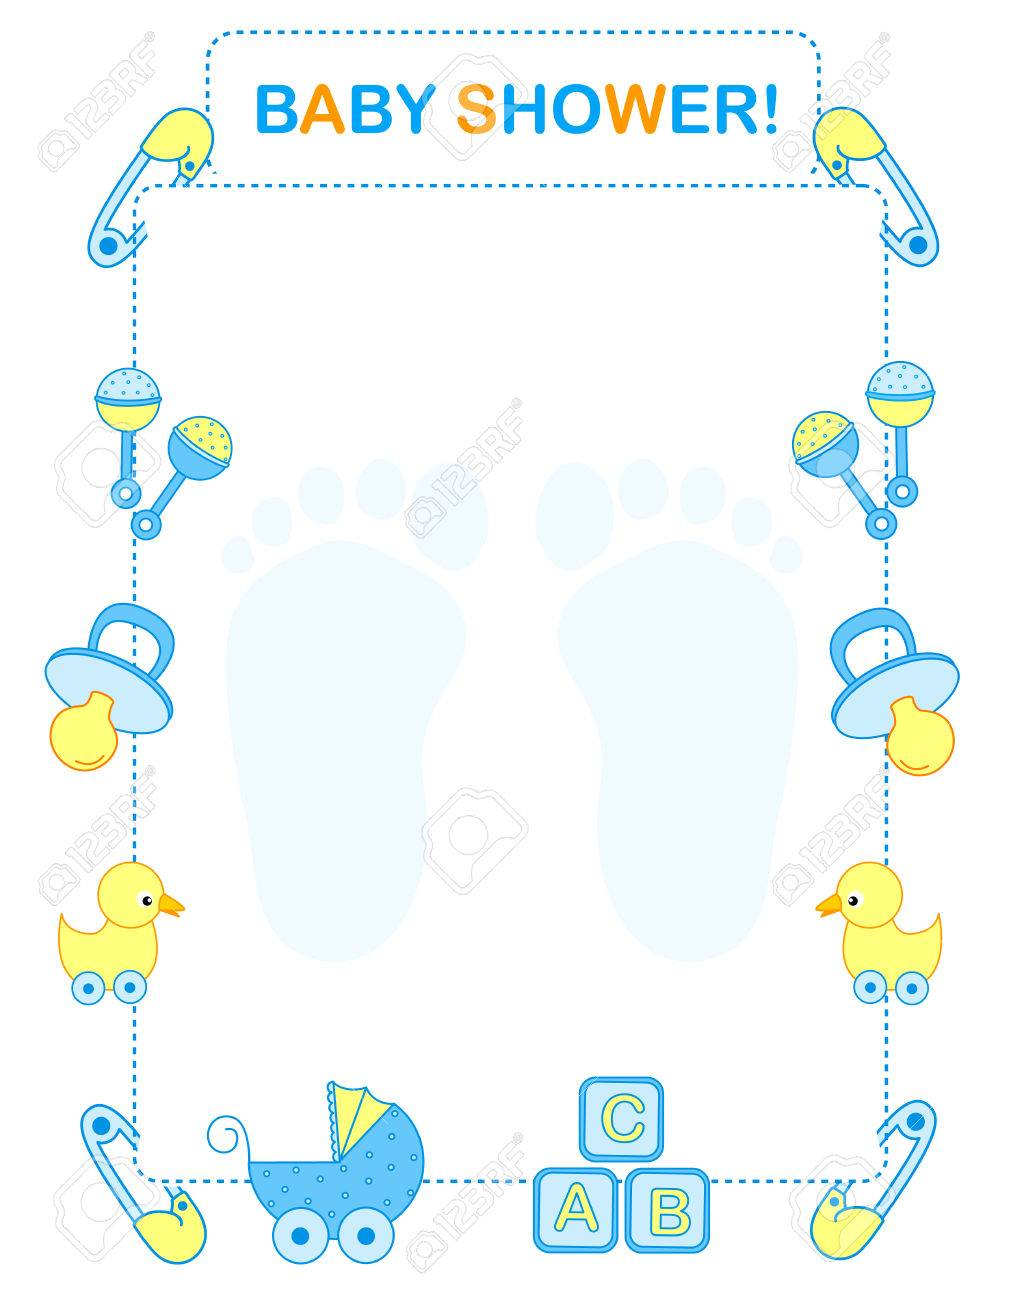 Babyshower Borders : babyshower, borders, Illustration, Shower, Invitation, Arrival.., Royalty, Cliparts,, Vectors,, Stock, Illustration., Image, 38545893.